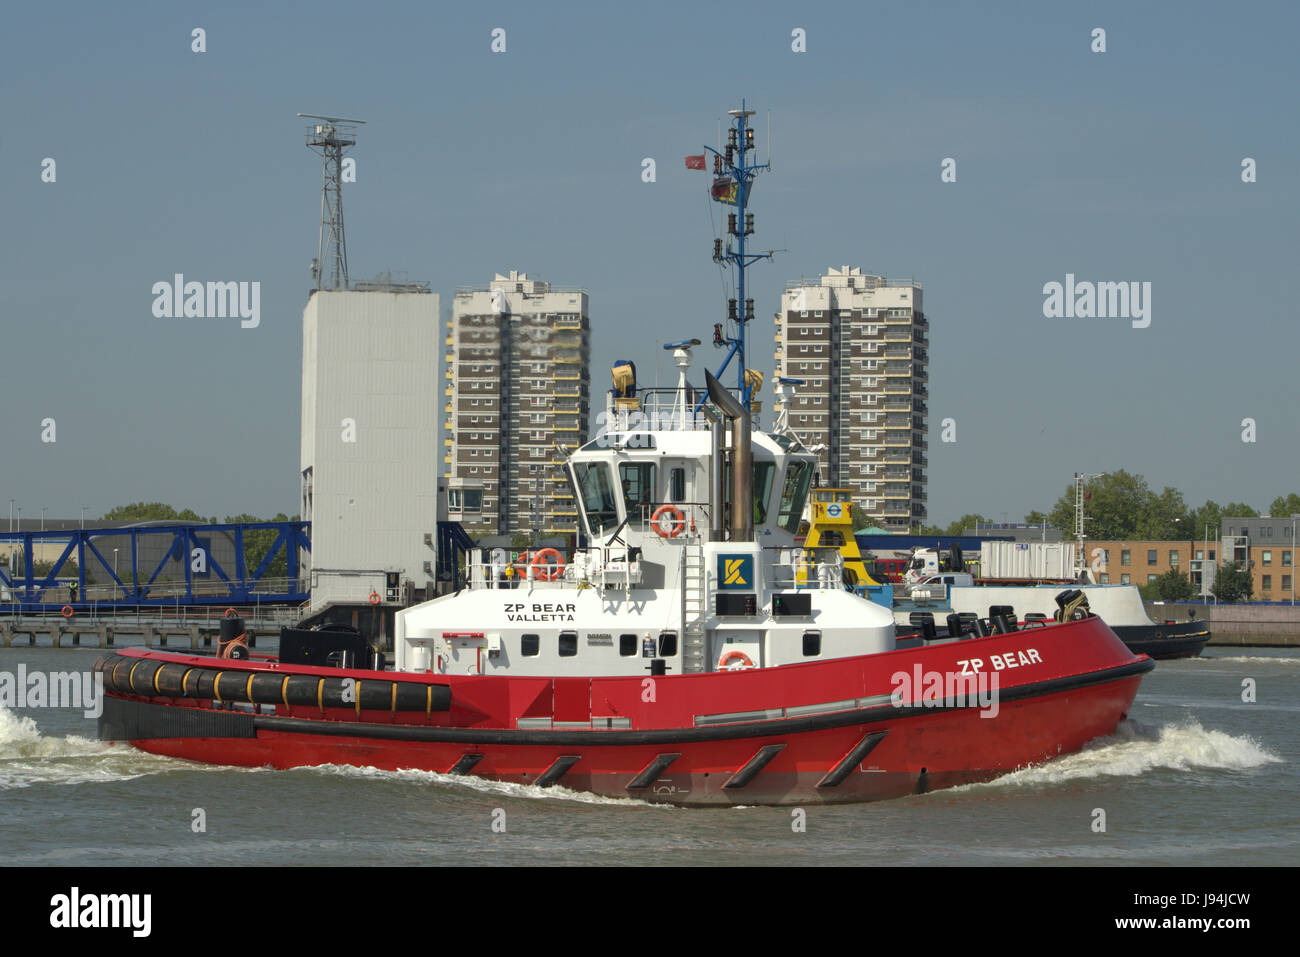 Tug ZP Bear heads down the Thames in London after assisting a vessel to undock - Stock Image